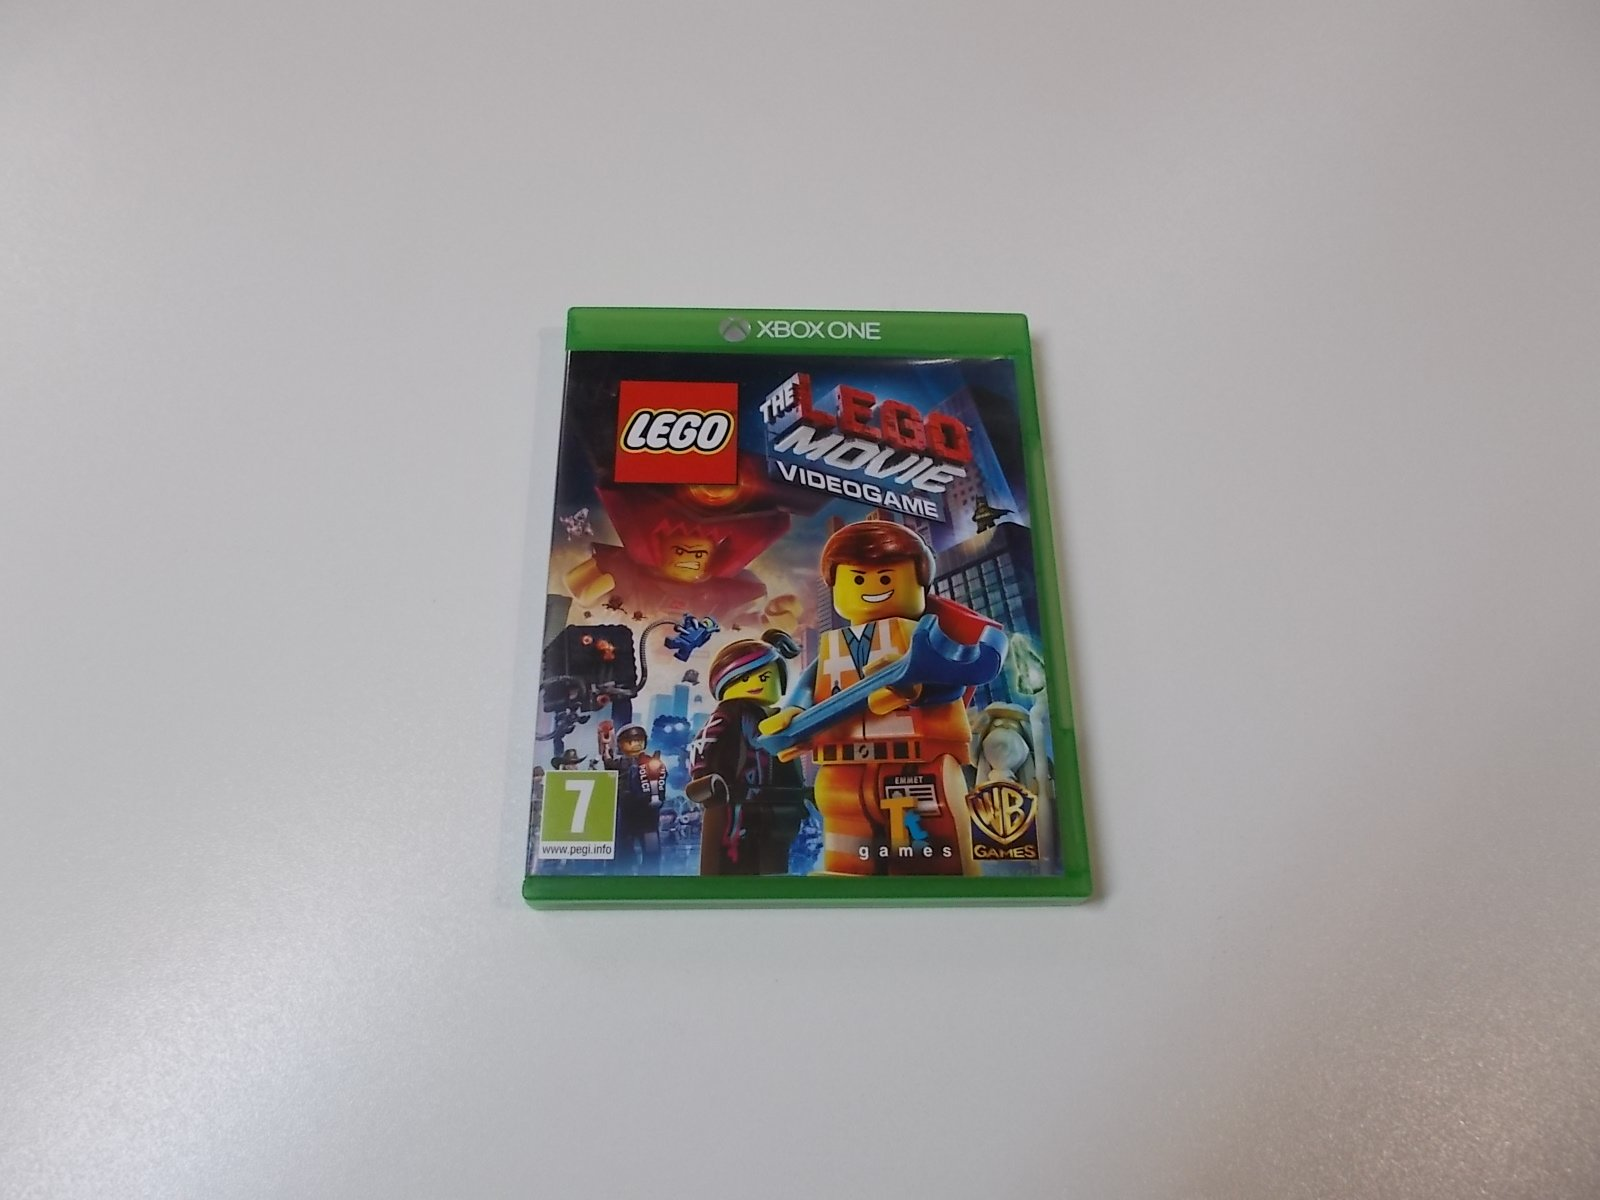 THE LEGO MOVIE VIDEOGAME - GRA Xbox One - Opole 0461